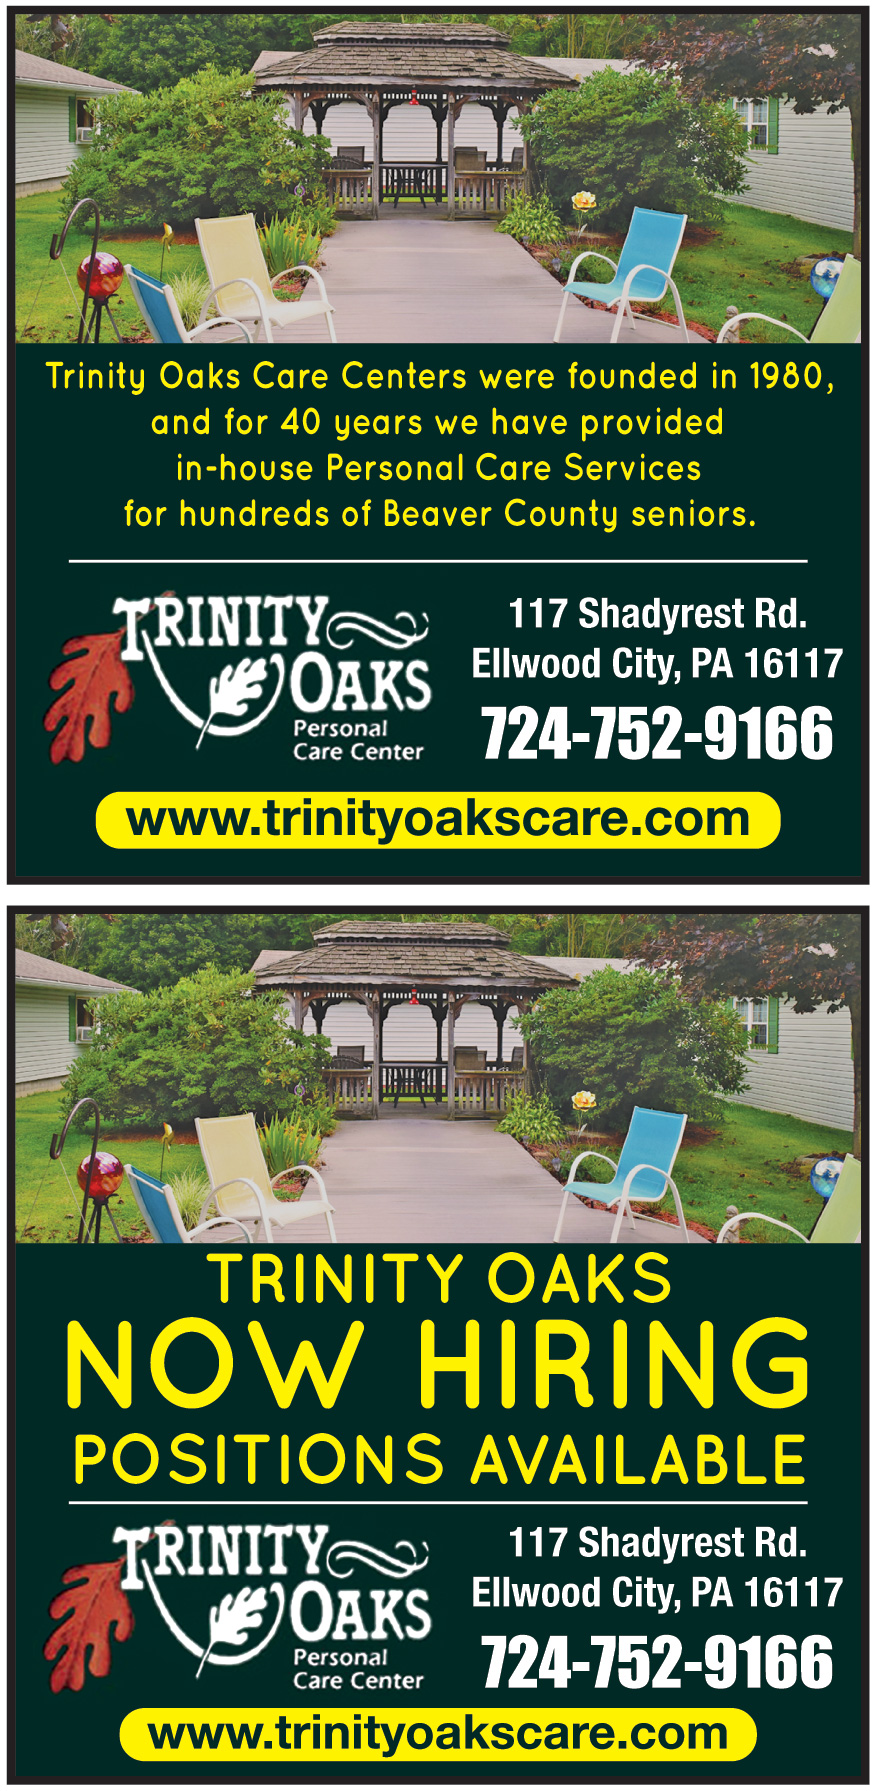 TRINITY OAKS CARE CENTER